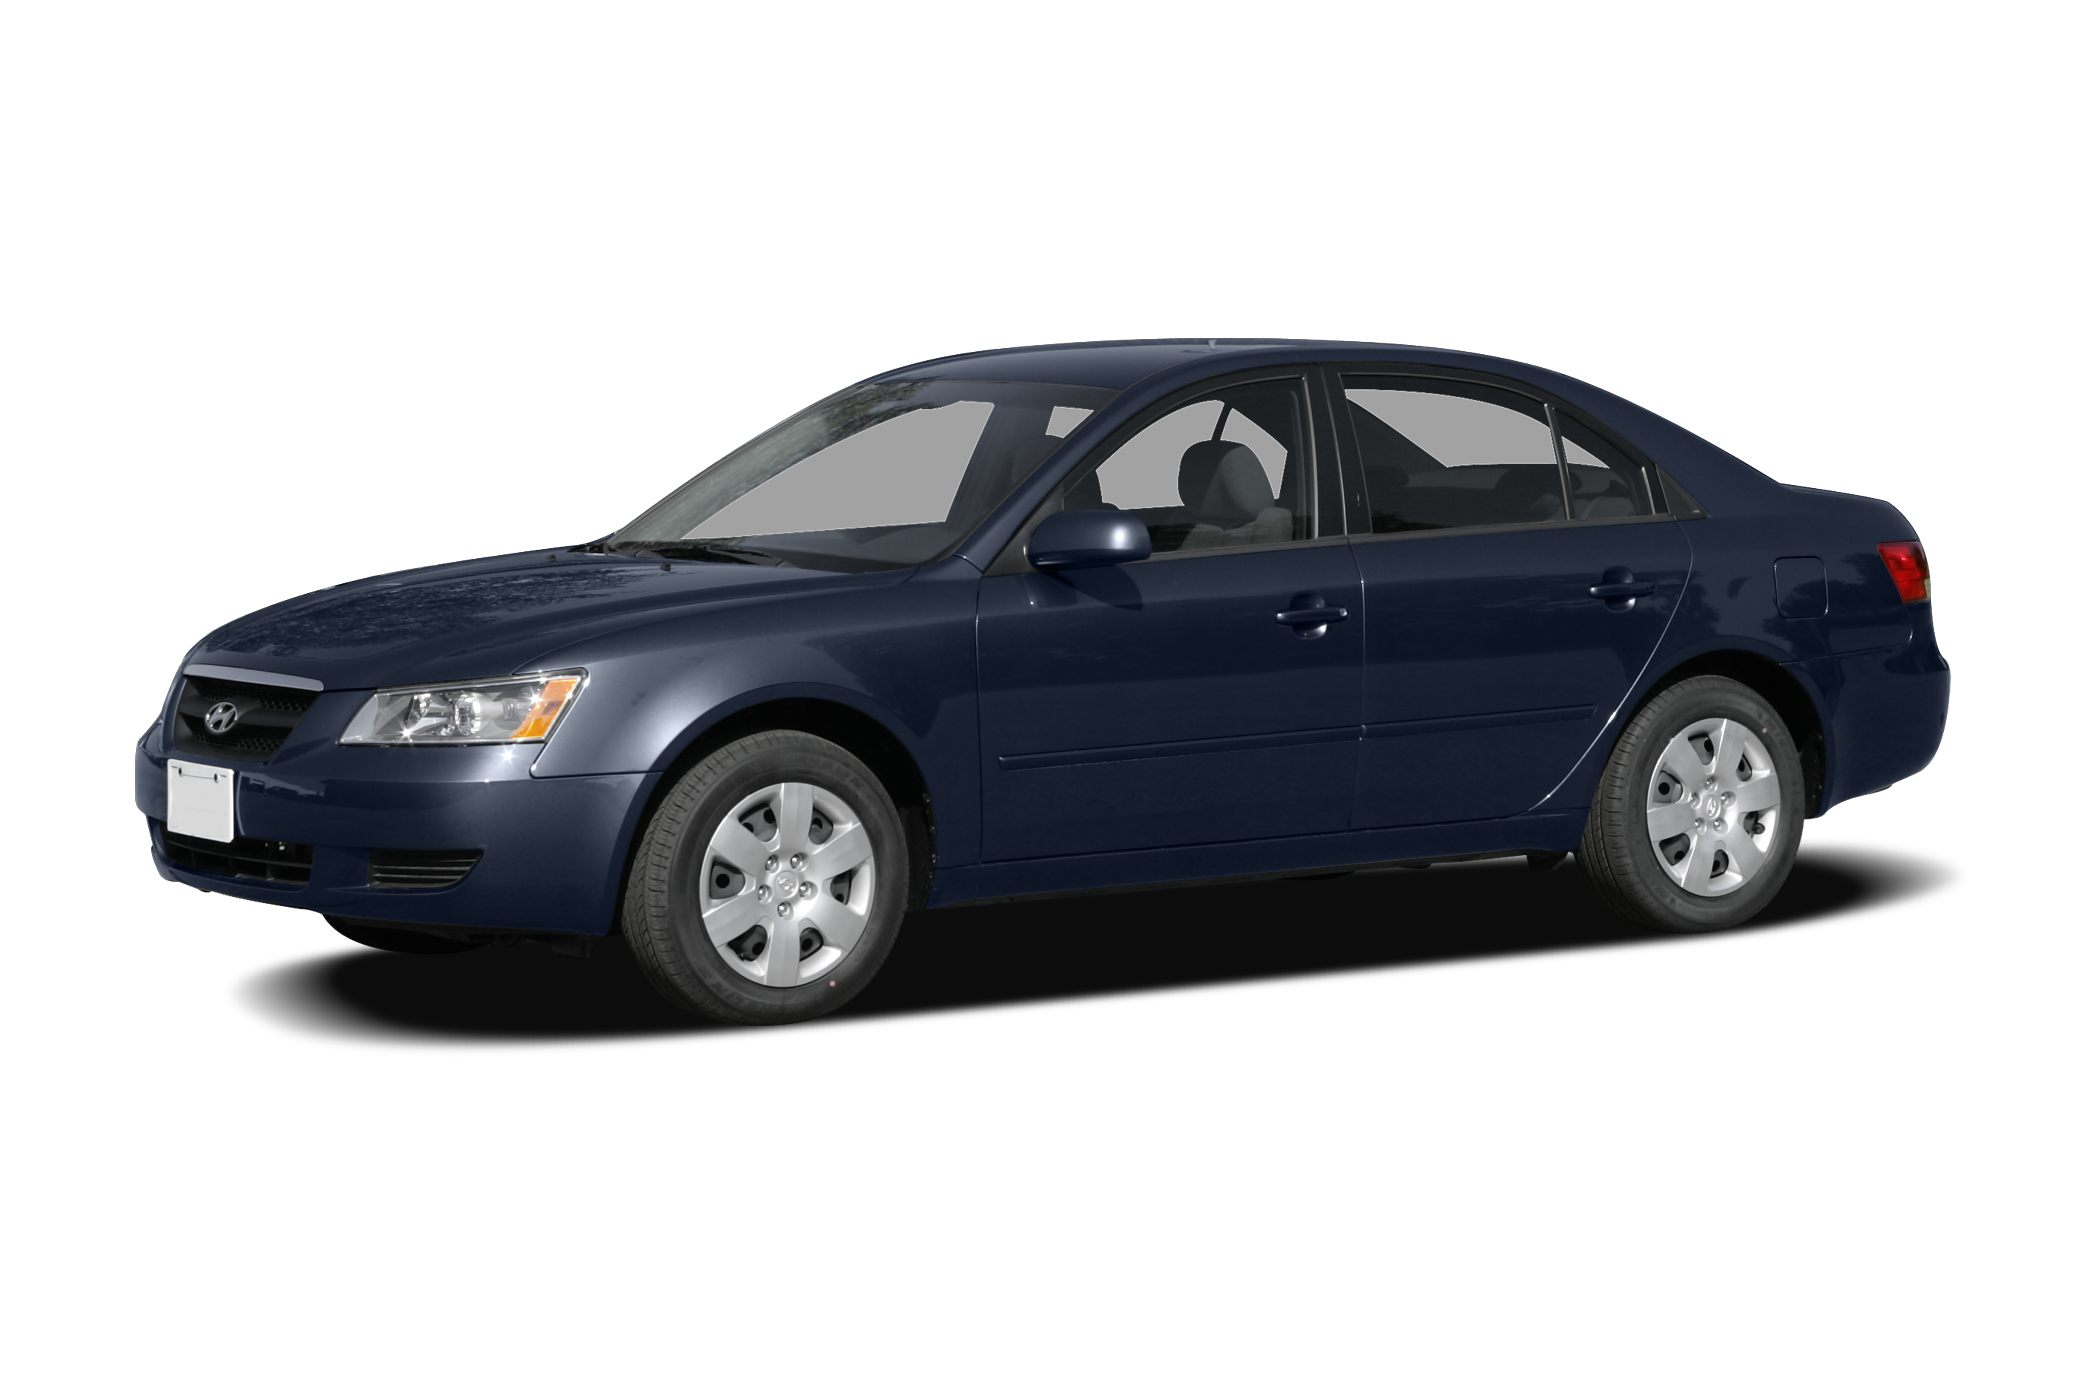 2007 Hyundai Sonata GLS GLS trim EPA 33 MPG Hwy24 MPG City CD Player Edmundscom explains Stil